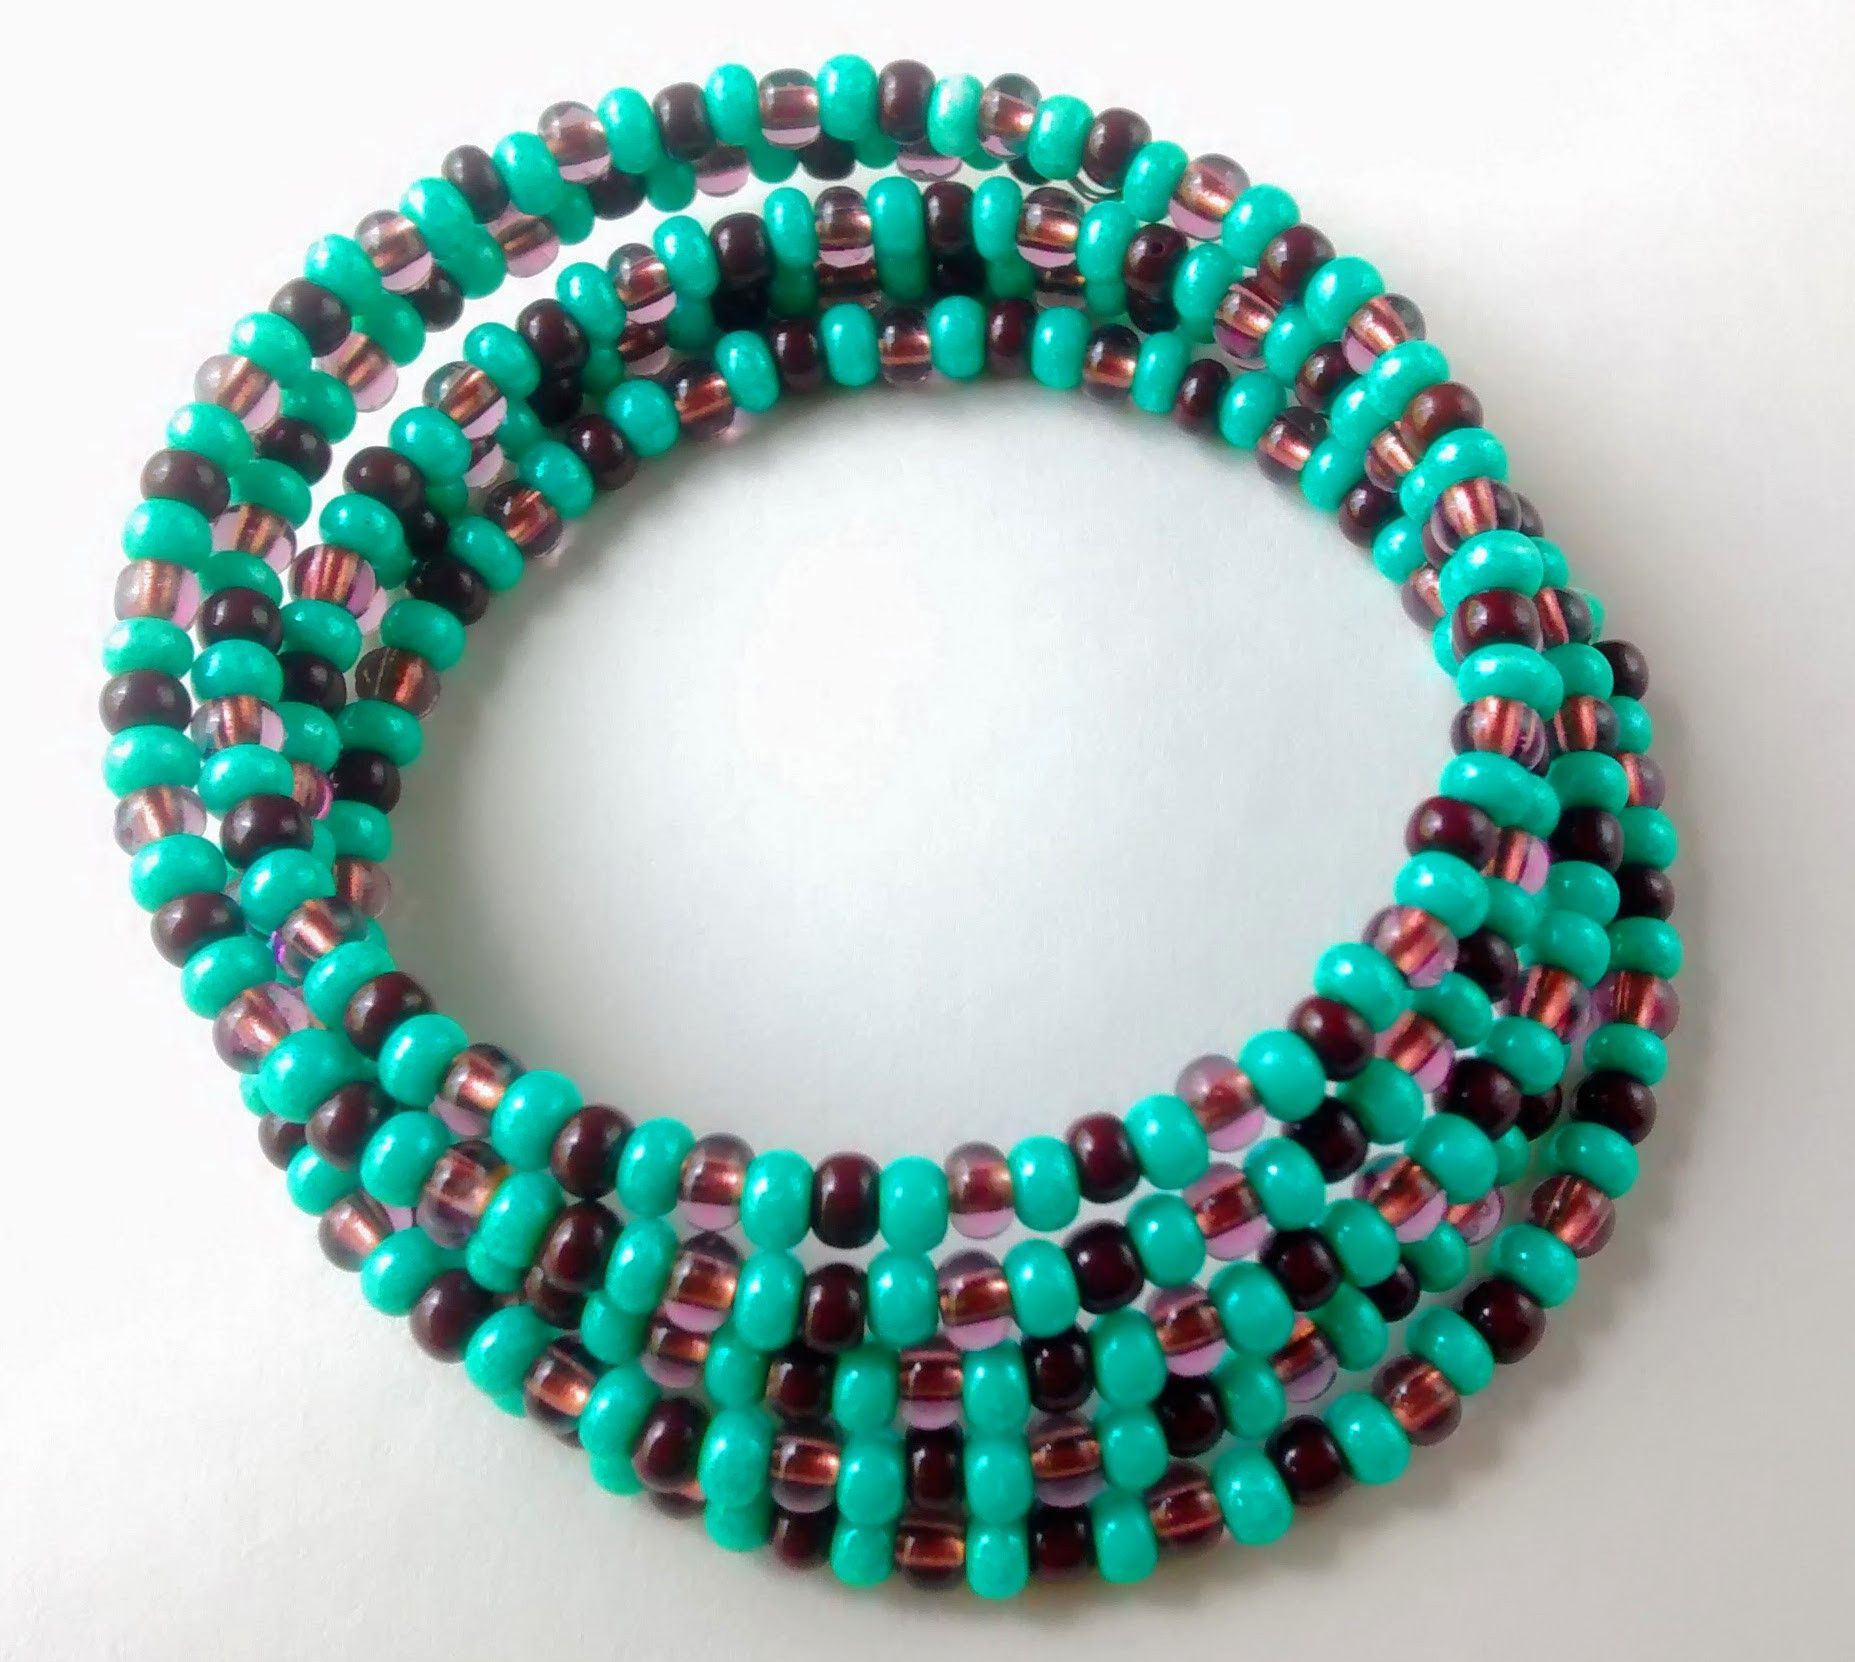 Five coil round memory wire bracelet and wraps around your wrist for 37 inches total. Beads: Turquoise and brown opaque luster seed beads; Brown transparent luster seed beads No clasp is needed as the